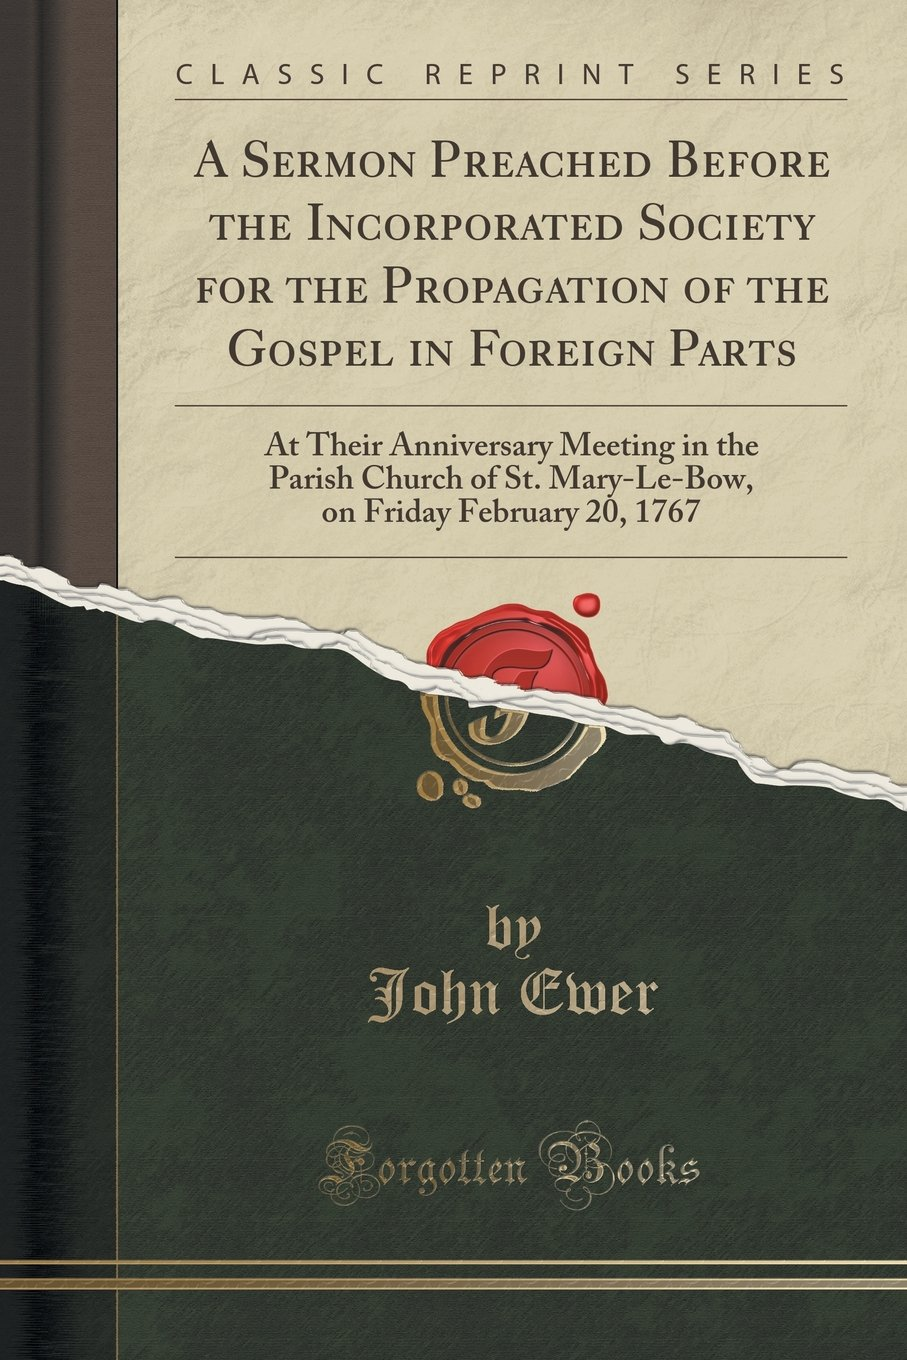 Download A Sermon Preached Before the Incorporated Society for the Propagation of the Gospel in Foreign Parts: At Their Anniversary Meeting in the Parish ... on Friday February 20, 1767 (Classic Reprint) ebook